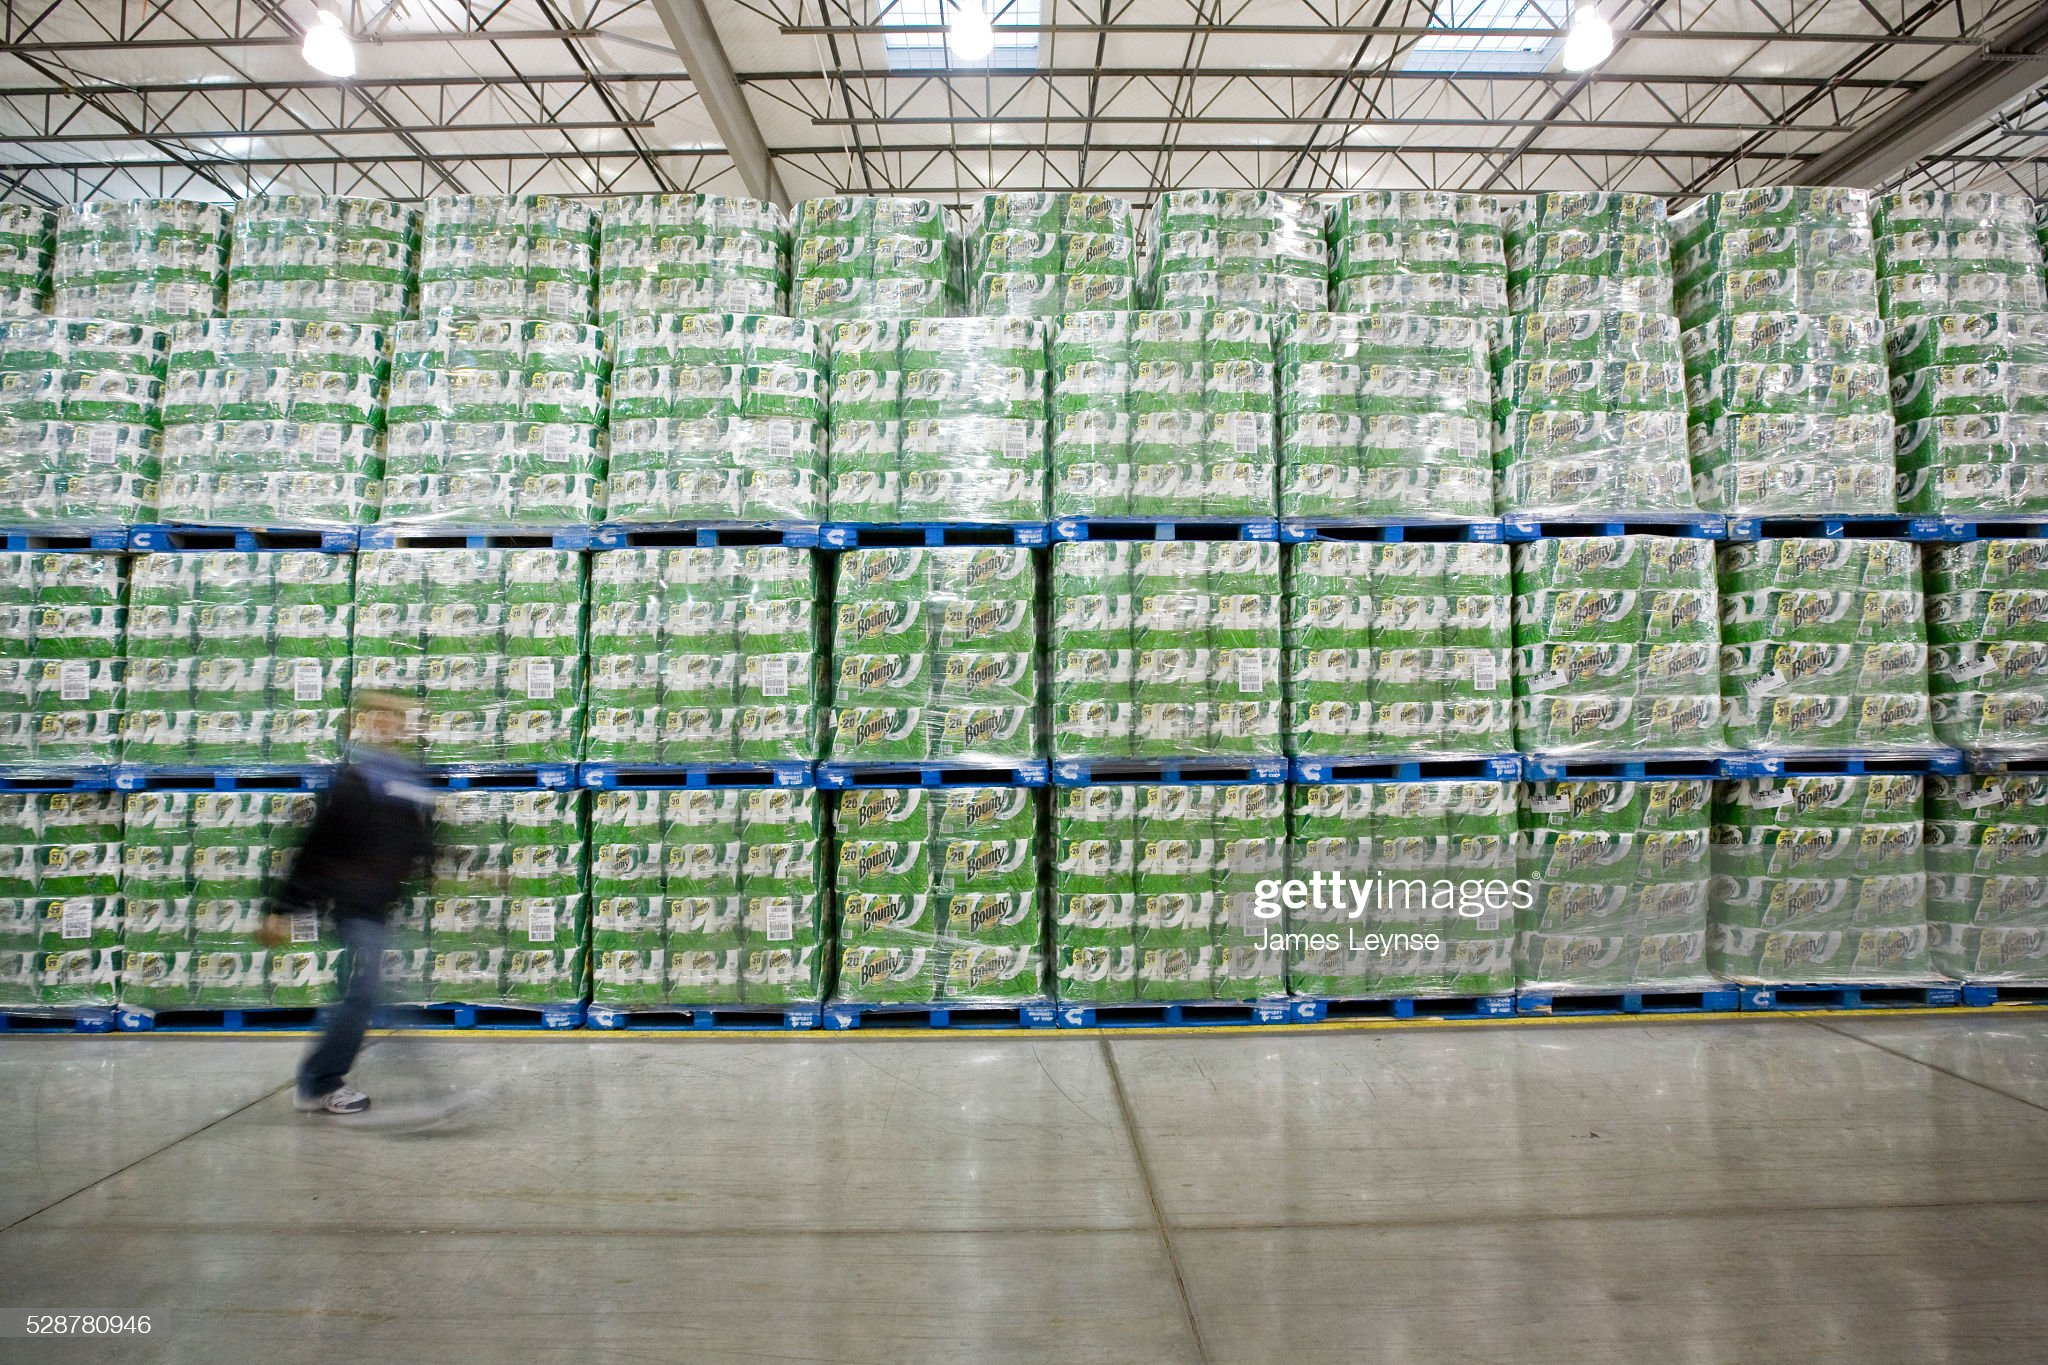 vast-mountain-of-bounty-paper-towels-stocked-up-to-take-advantage-of-picture-id528780946